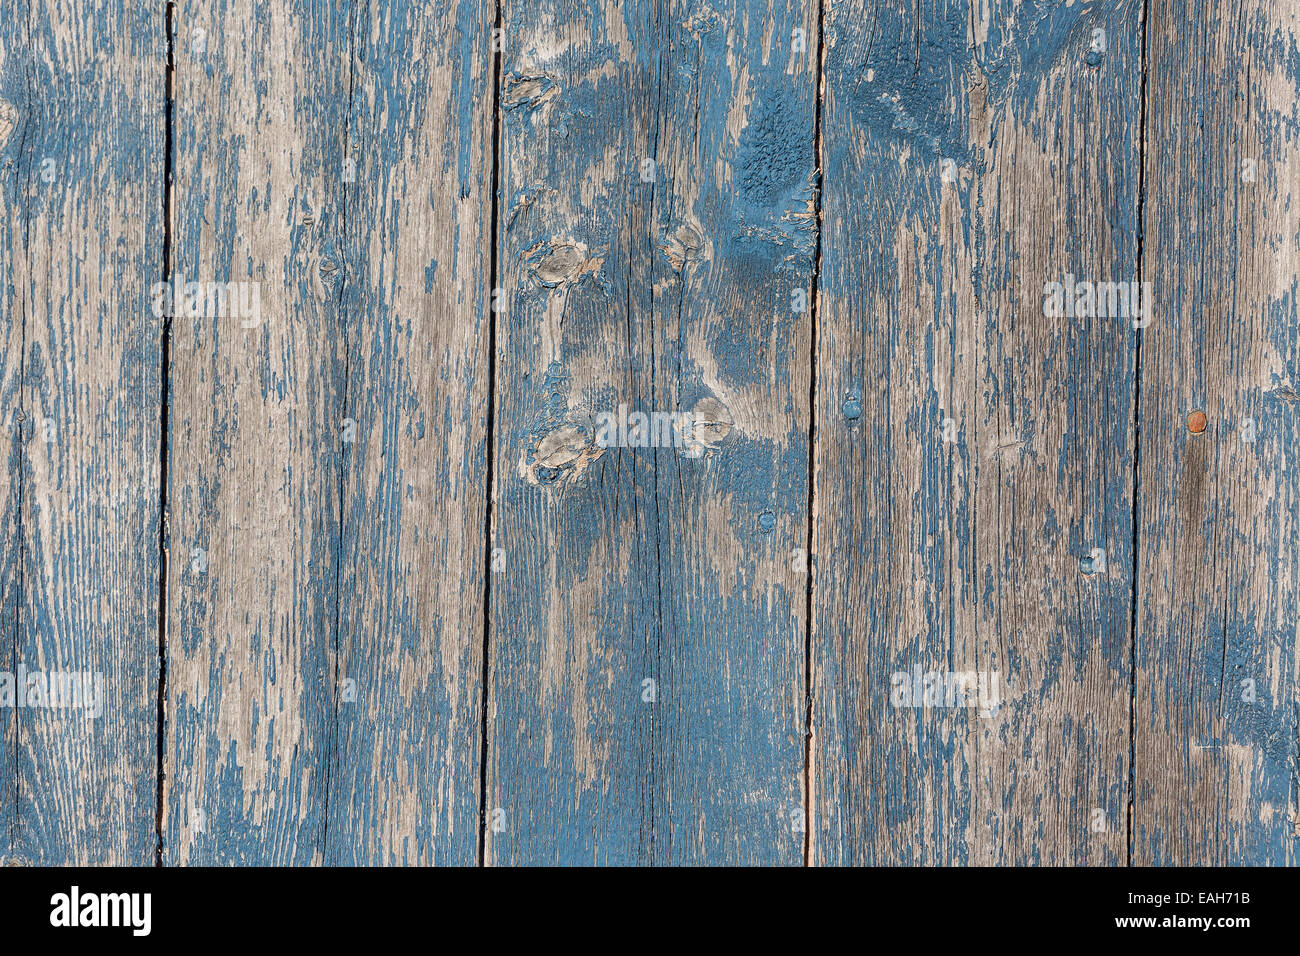 Old wooden barn board with distressed blue paint. - Stock Image